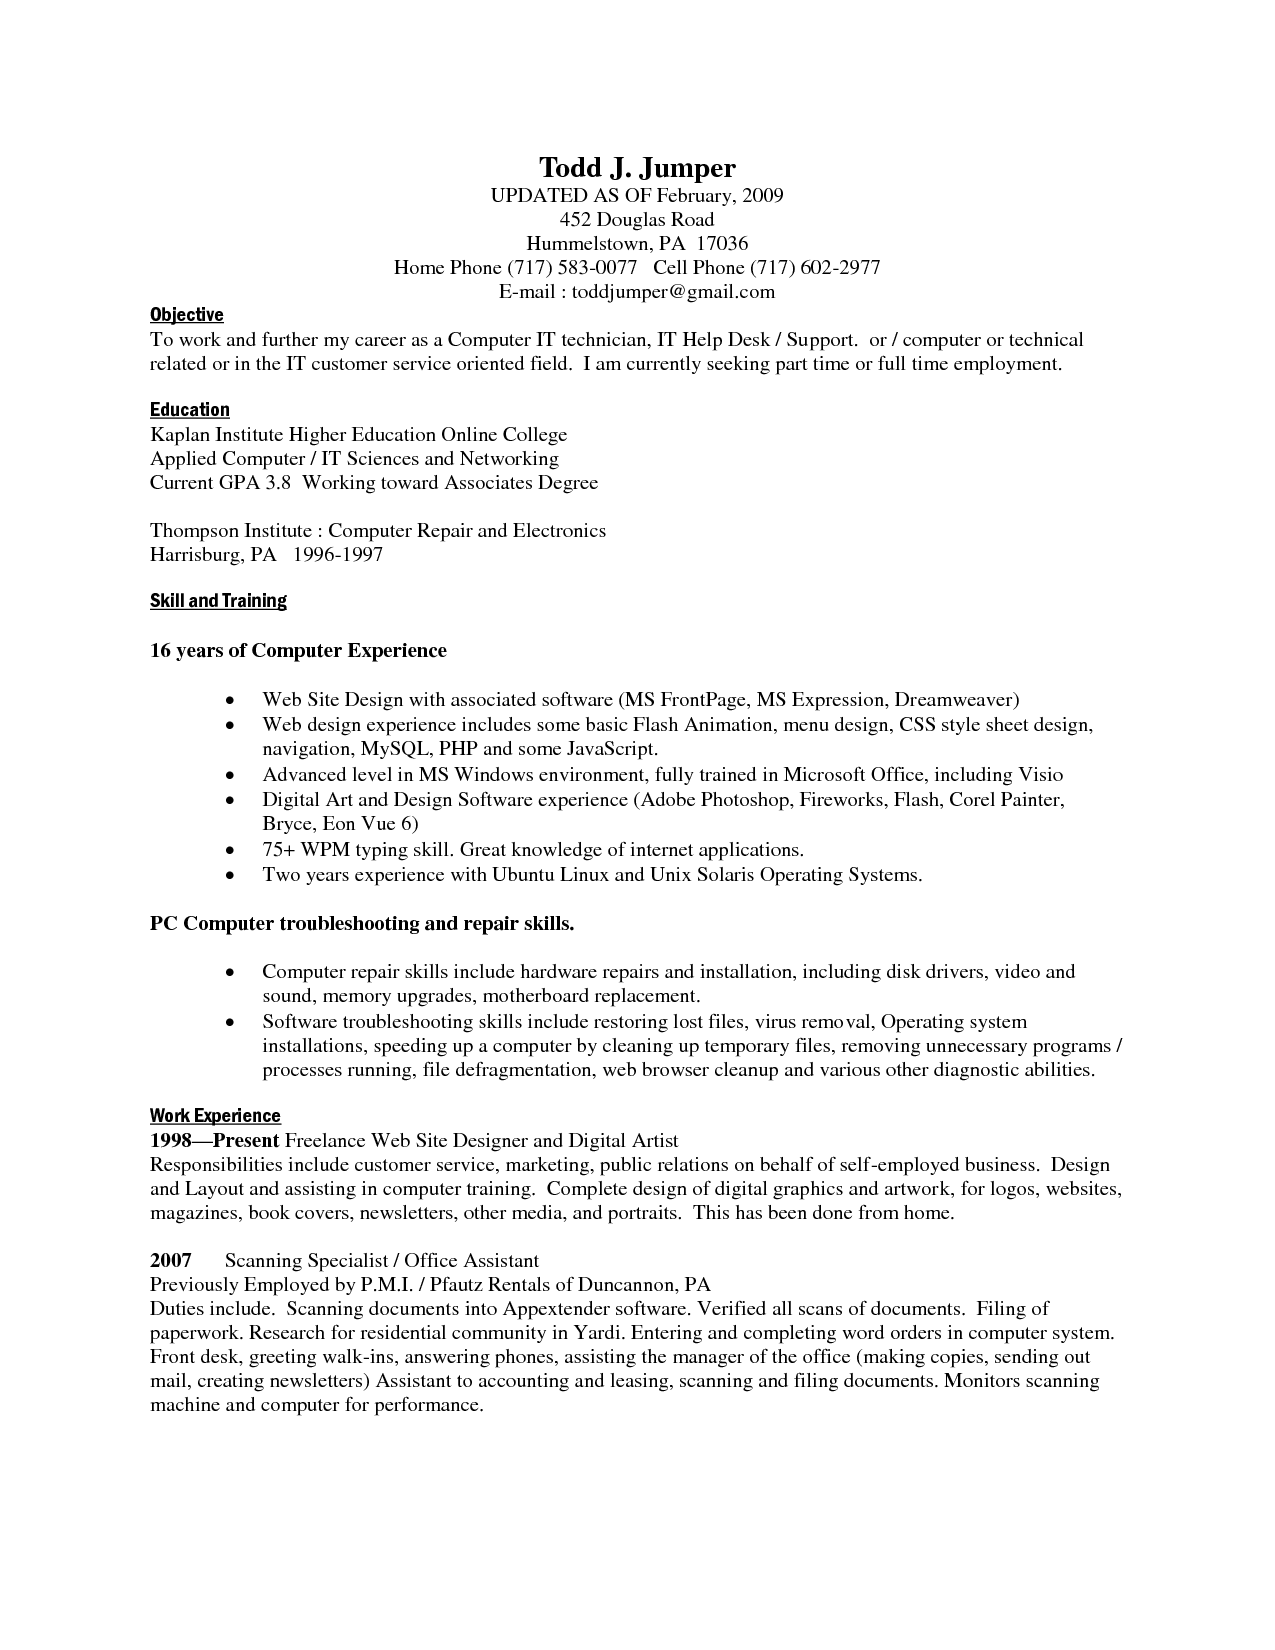 computer skills on sample resume     resumecareer